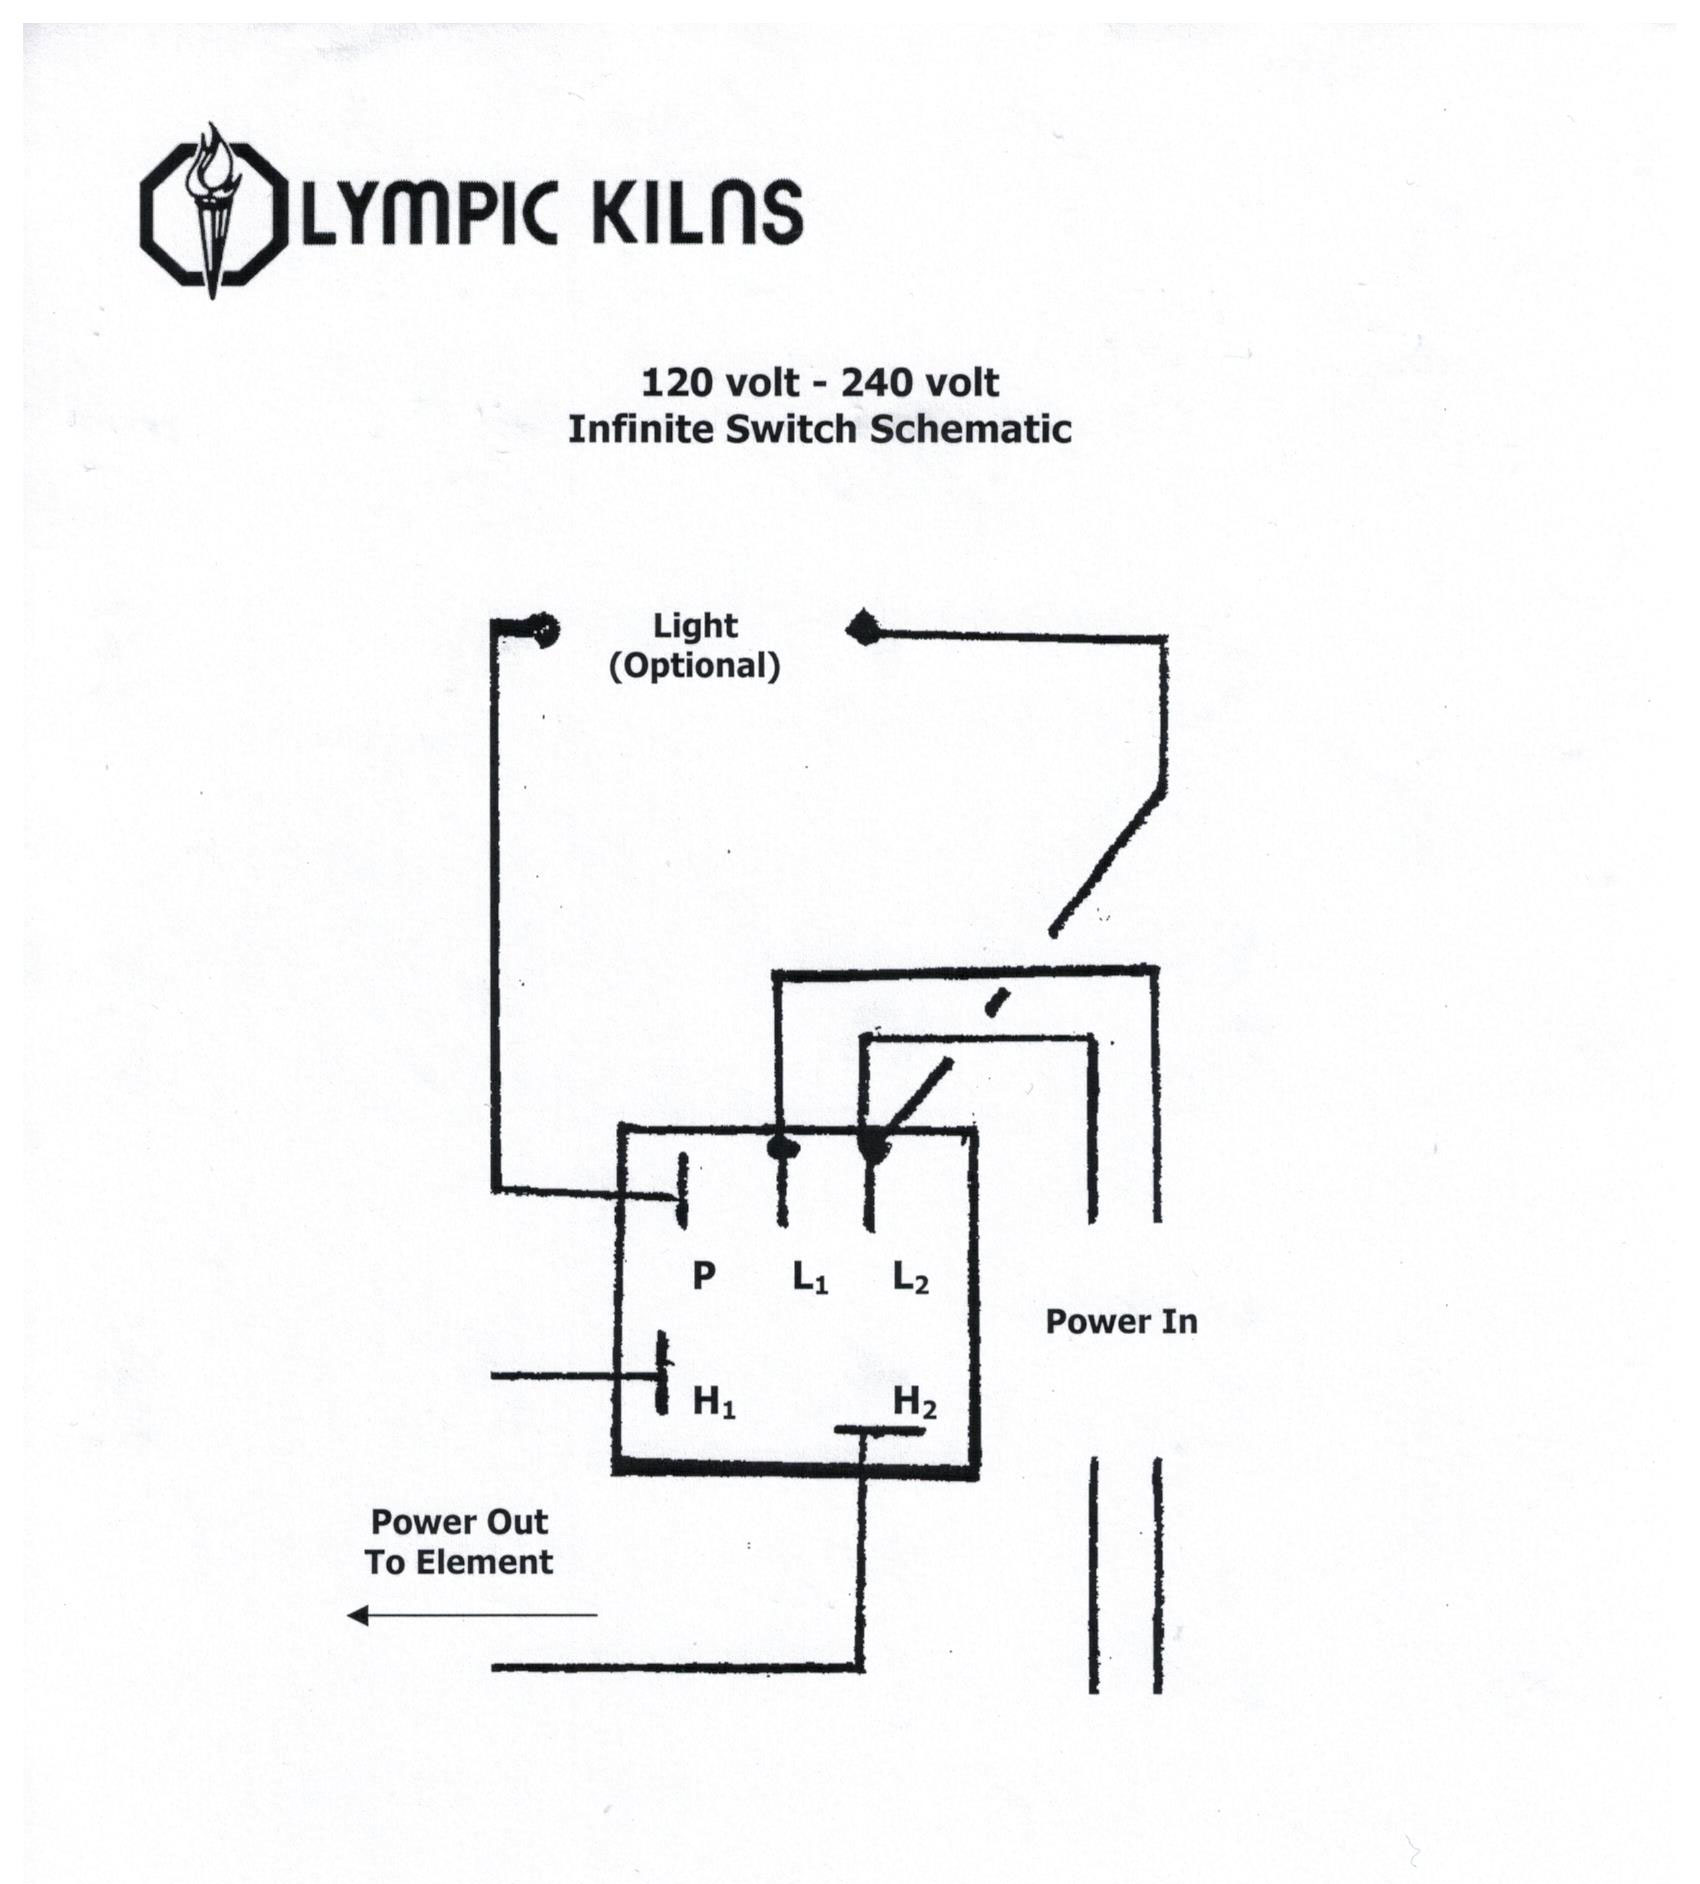 kiln wiring diagram   19 wiring diagram images